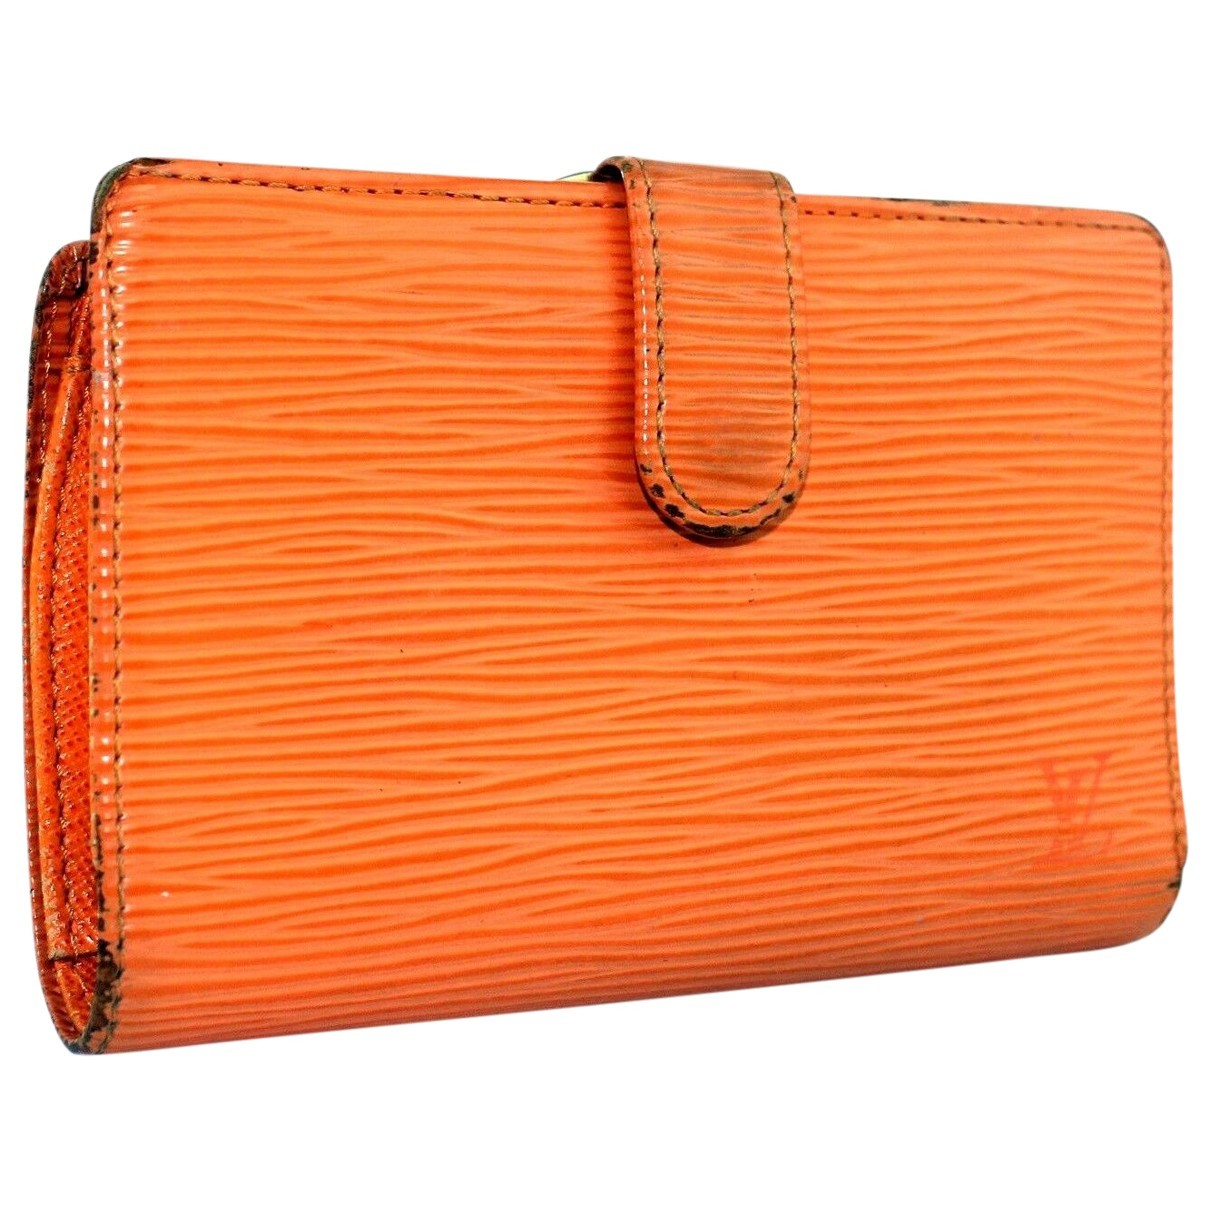 Louis Vuitton \N Portemonnaie in  Orange Leder